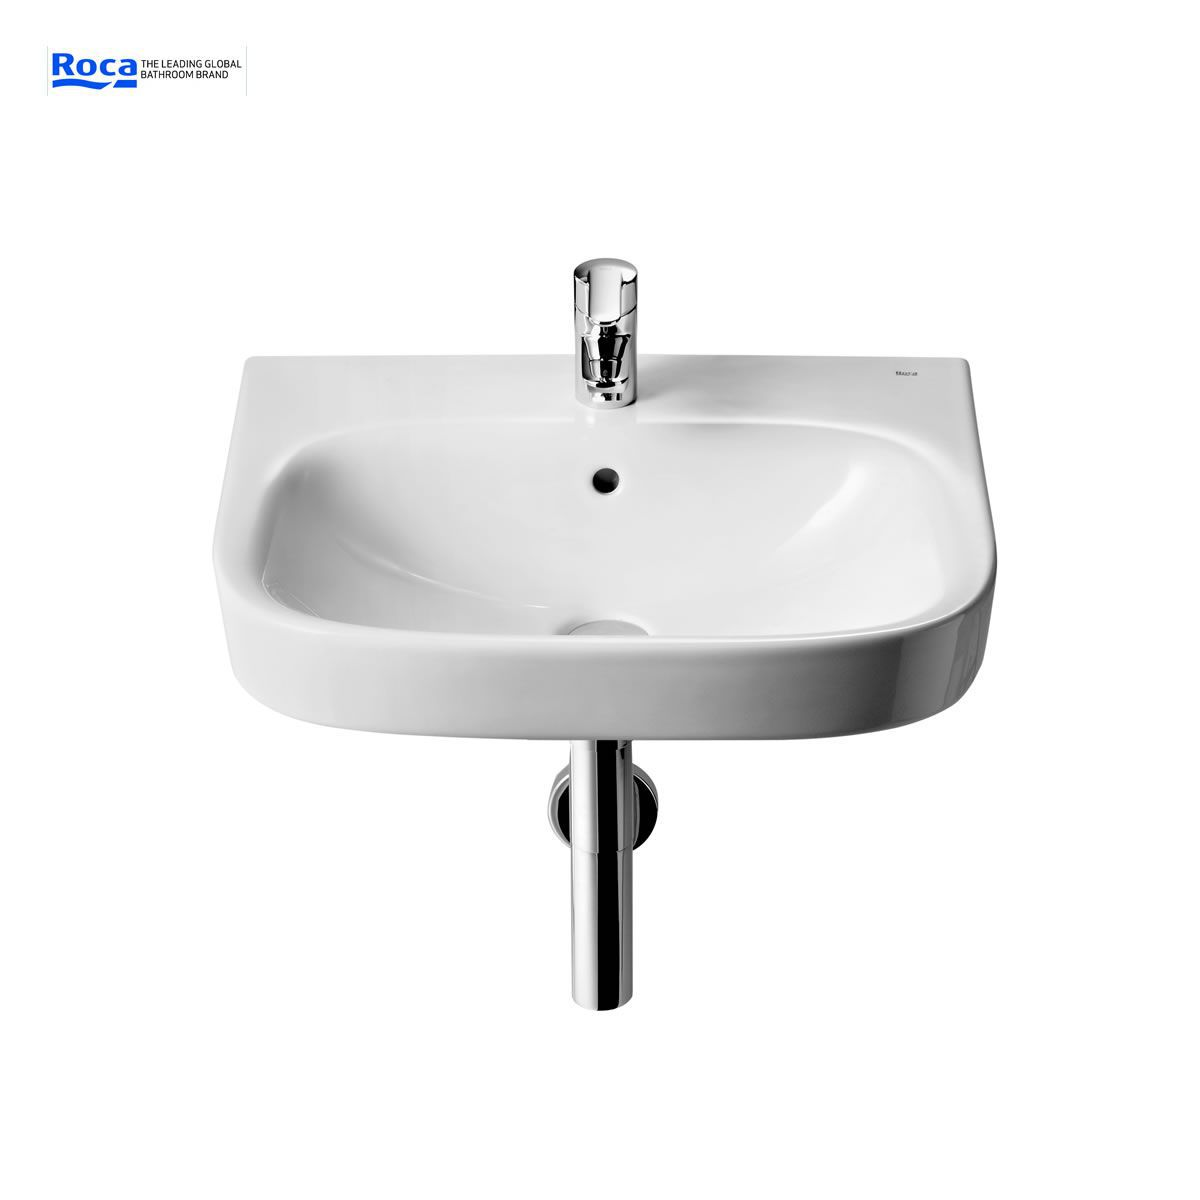 Roca Debba Bathroom Basin : UK Bathrooms